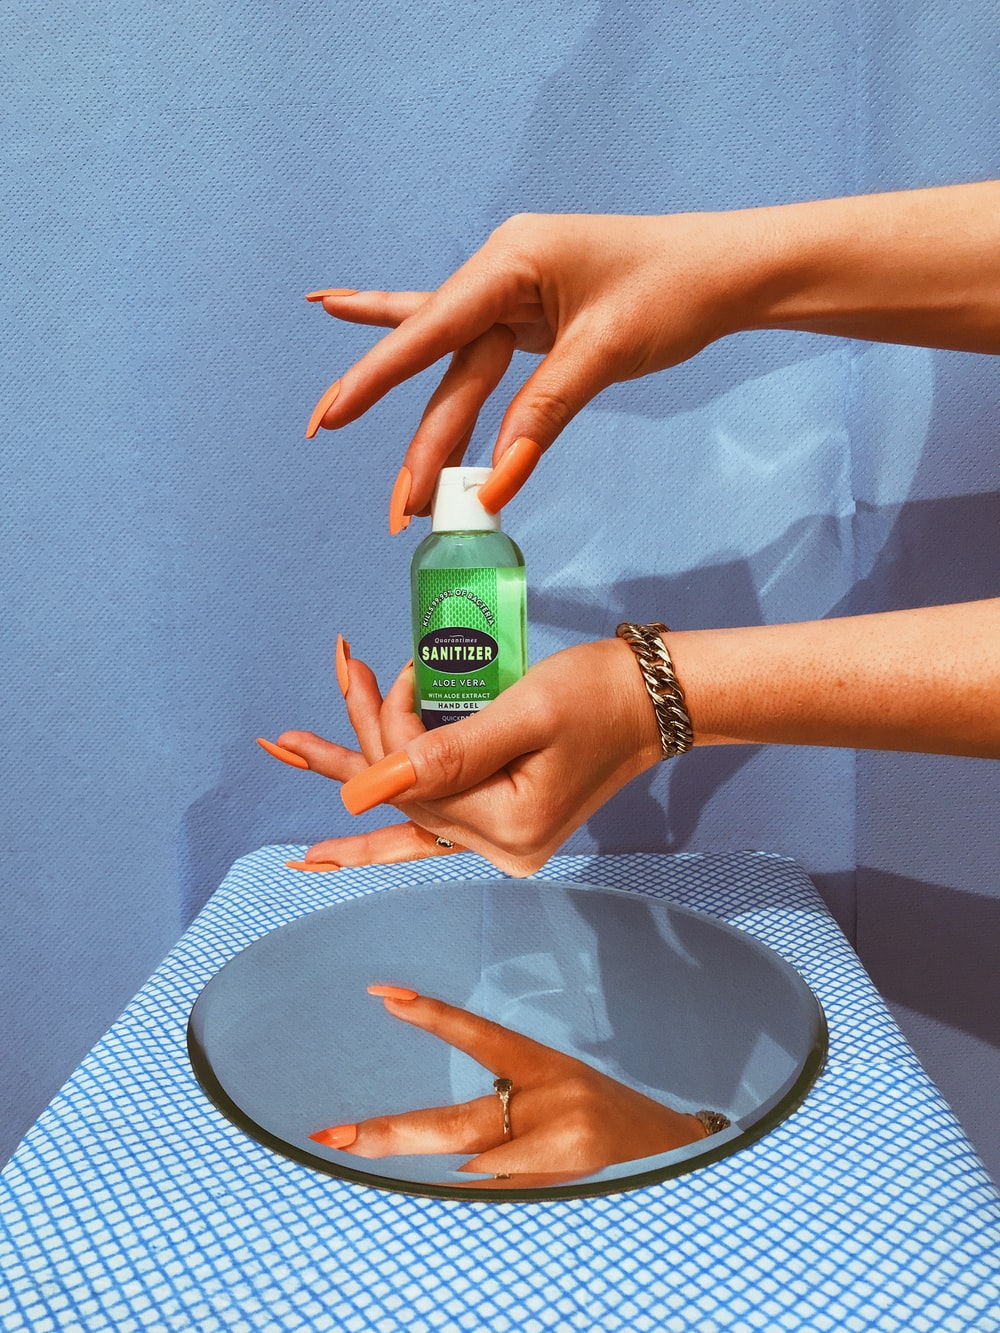 Be wise, sanitize.